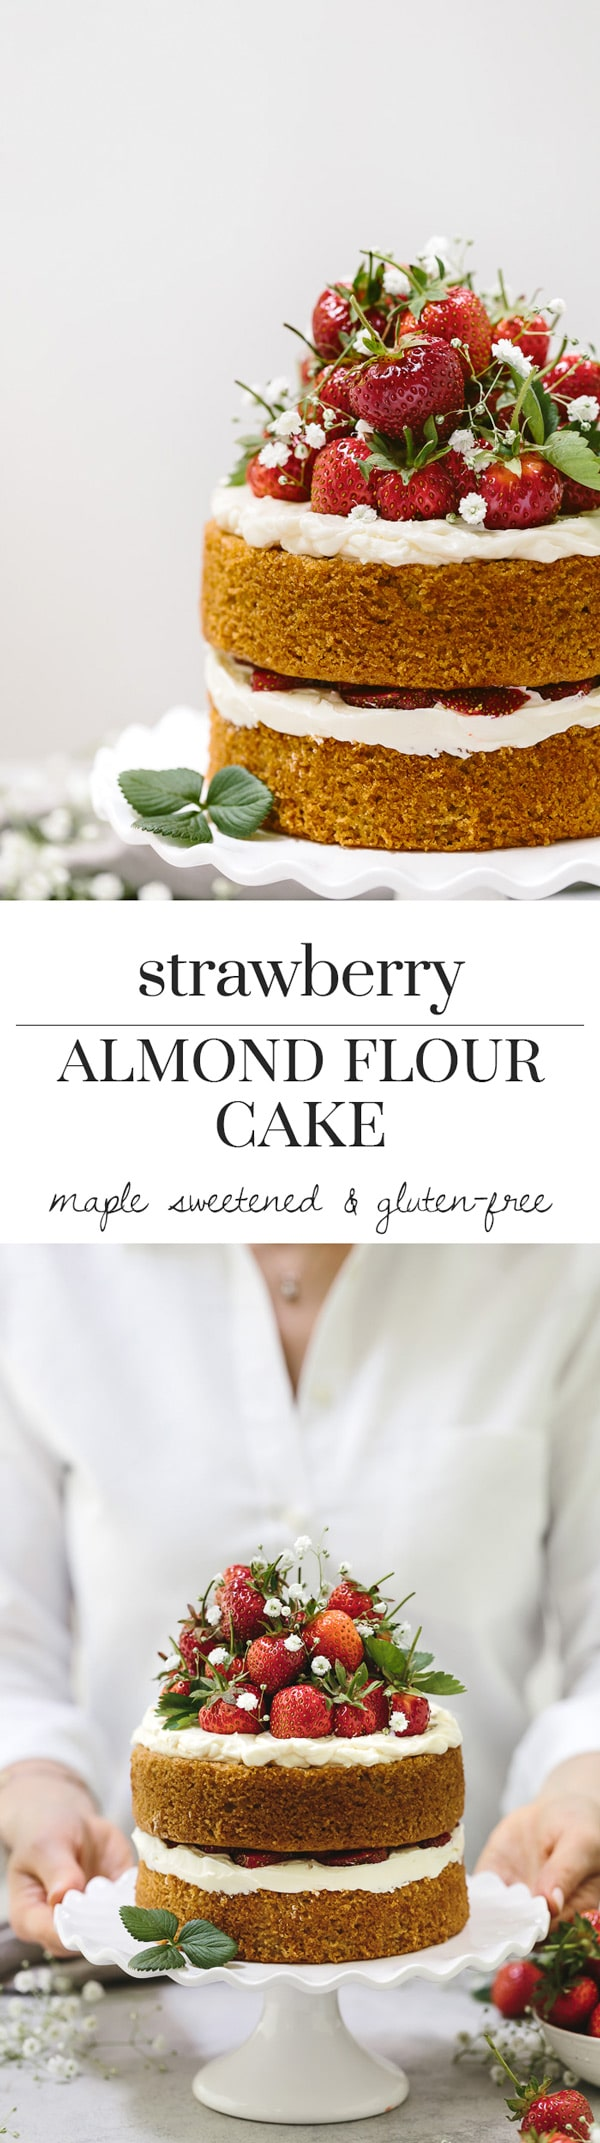 Strawberry Almond Flour Cake Recipe: Celebrate strawberry season with this gluten-free and maple-sweetened strawberry almond flour cake that is flavored with mascarpone whipped cream.